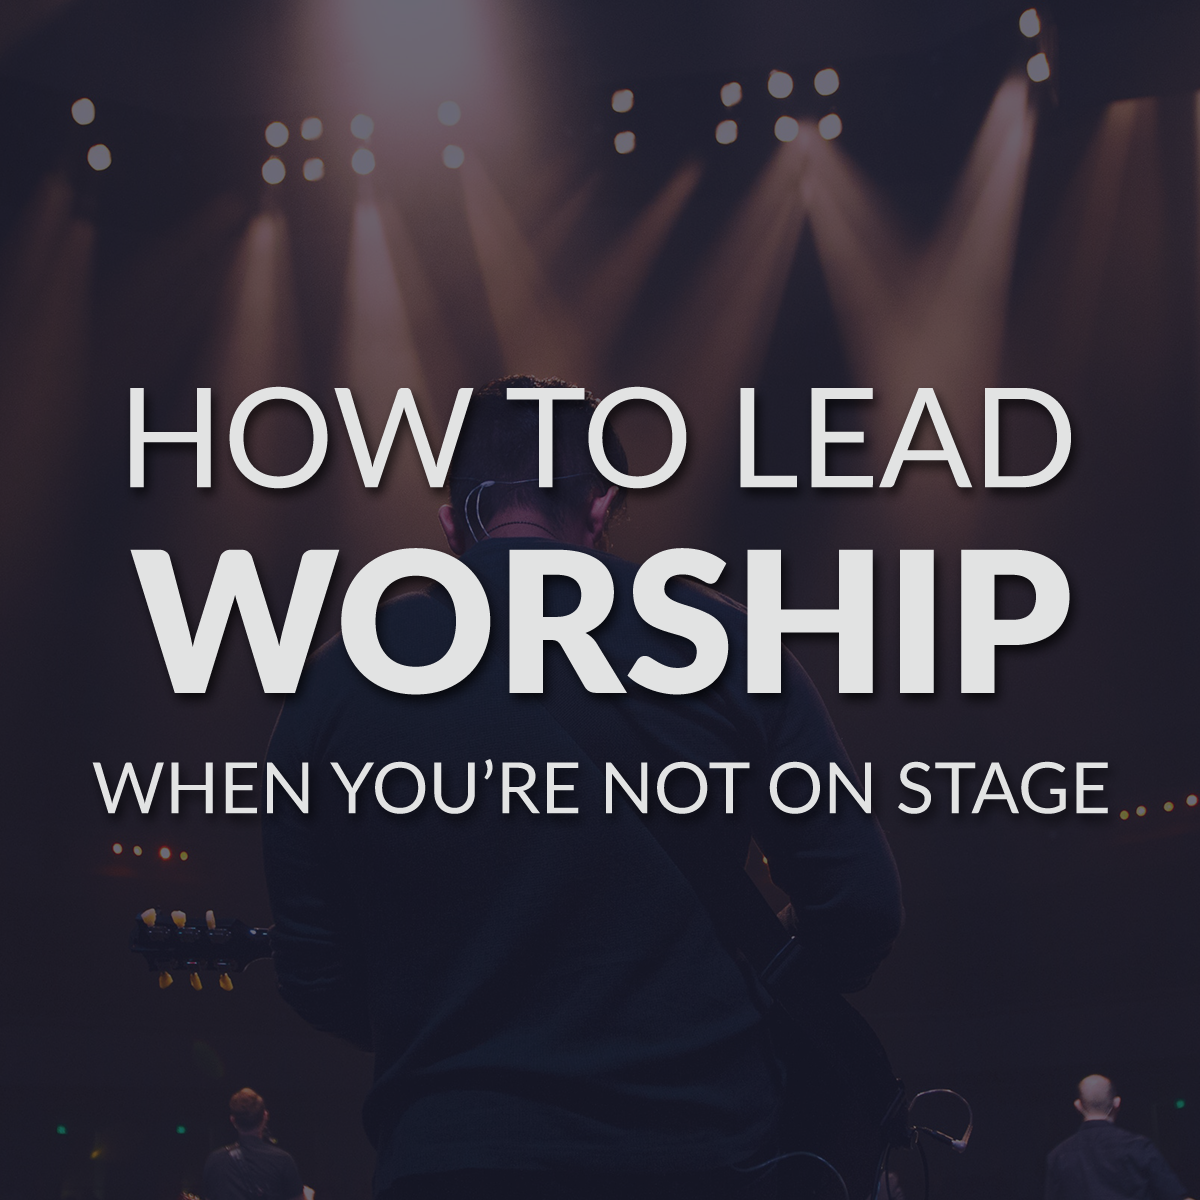 Leading worship when you're not on stage